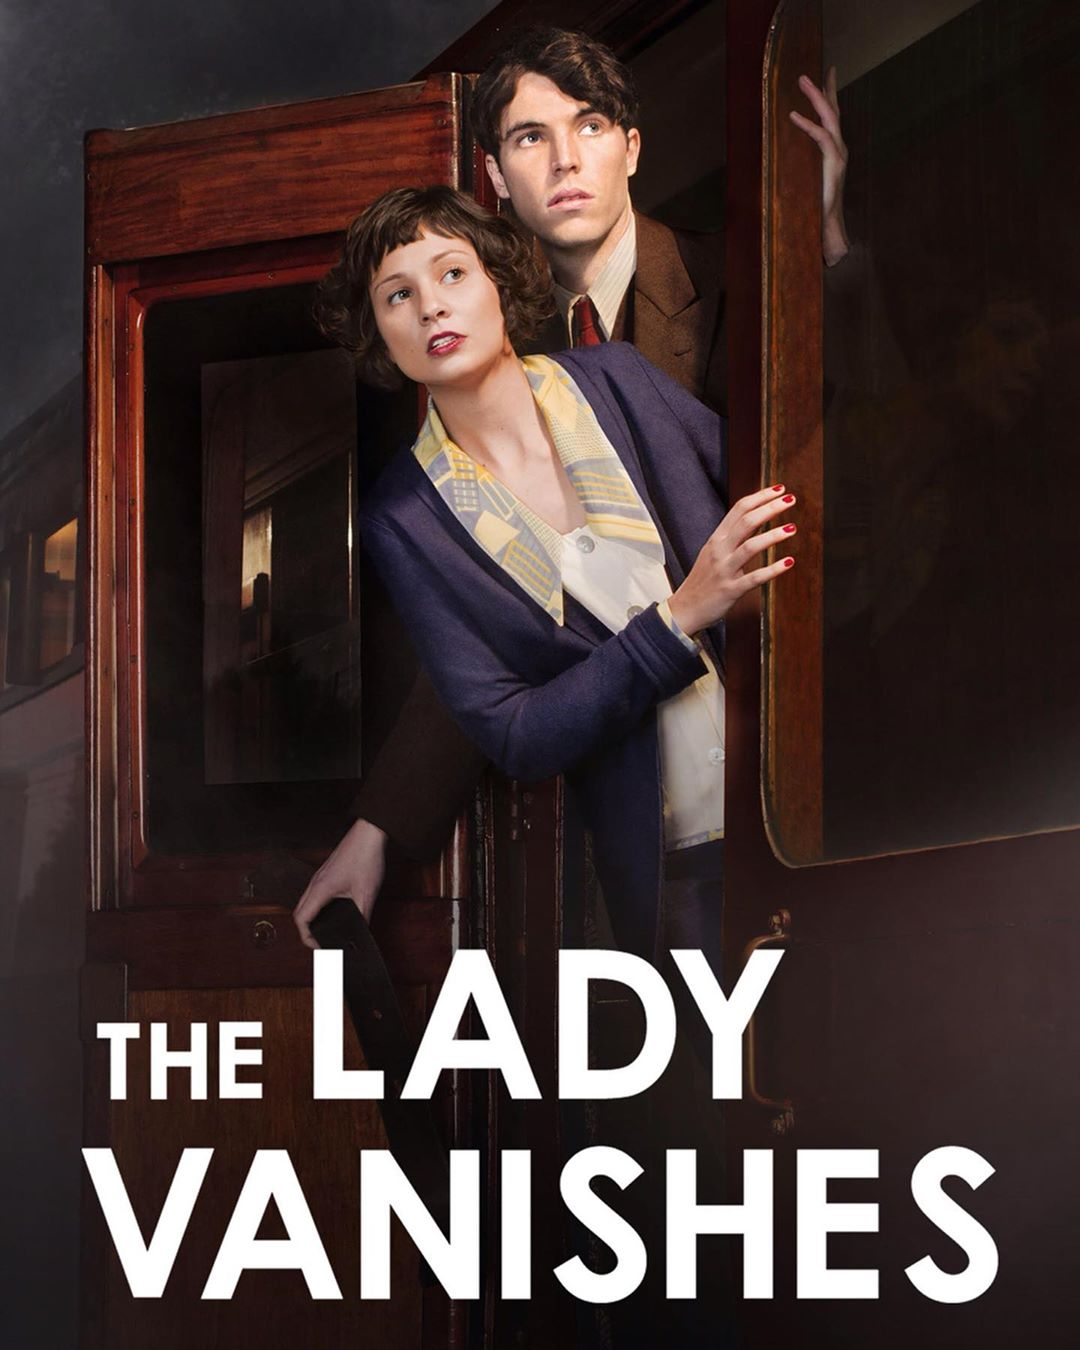 The Lady Vanish 2